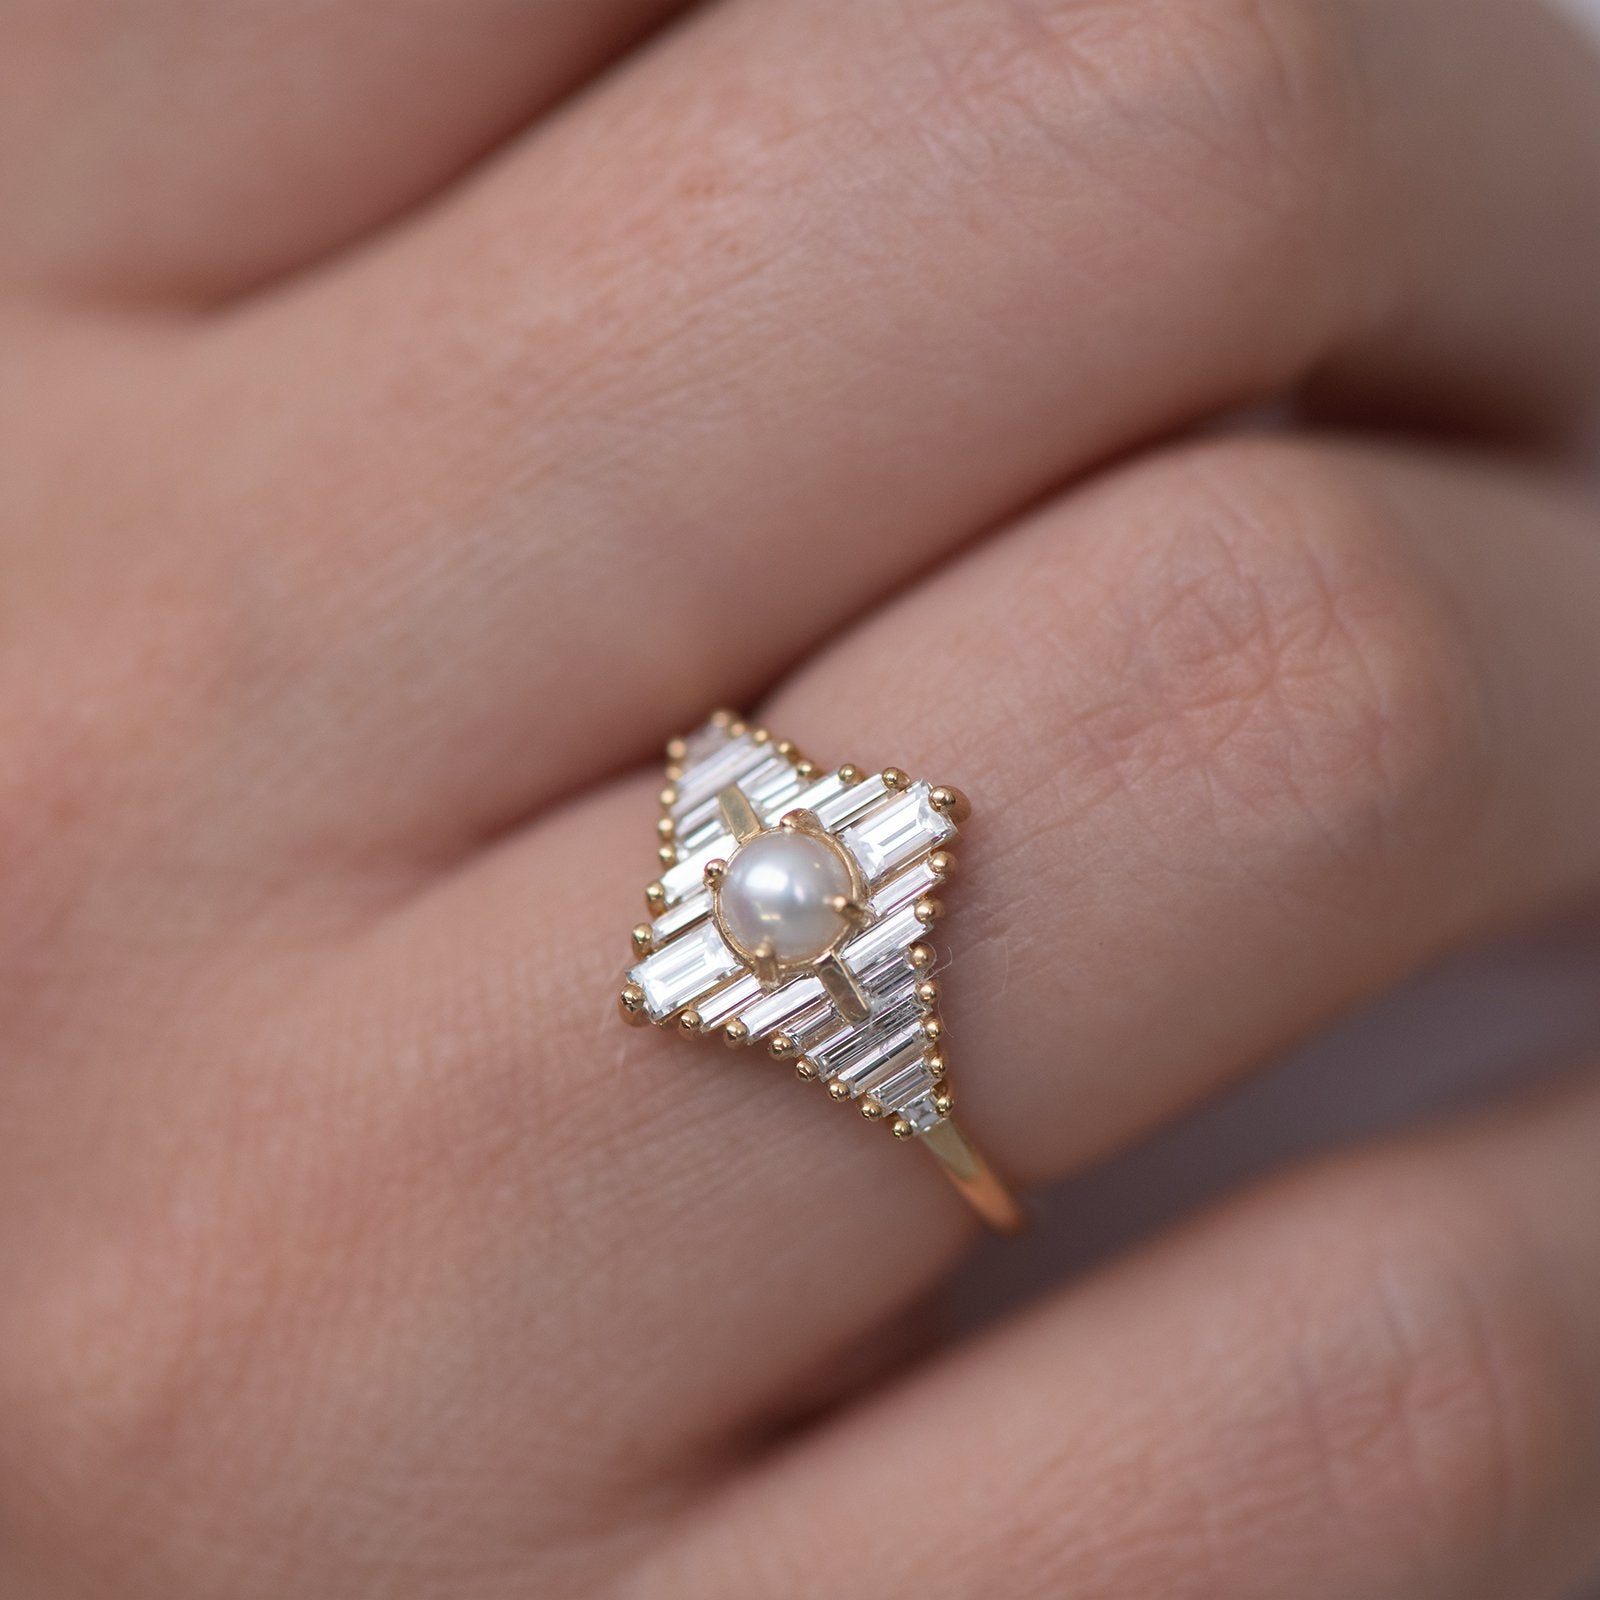 Star Diamond Engagement Ring with White Pearl on finger